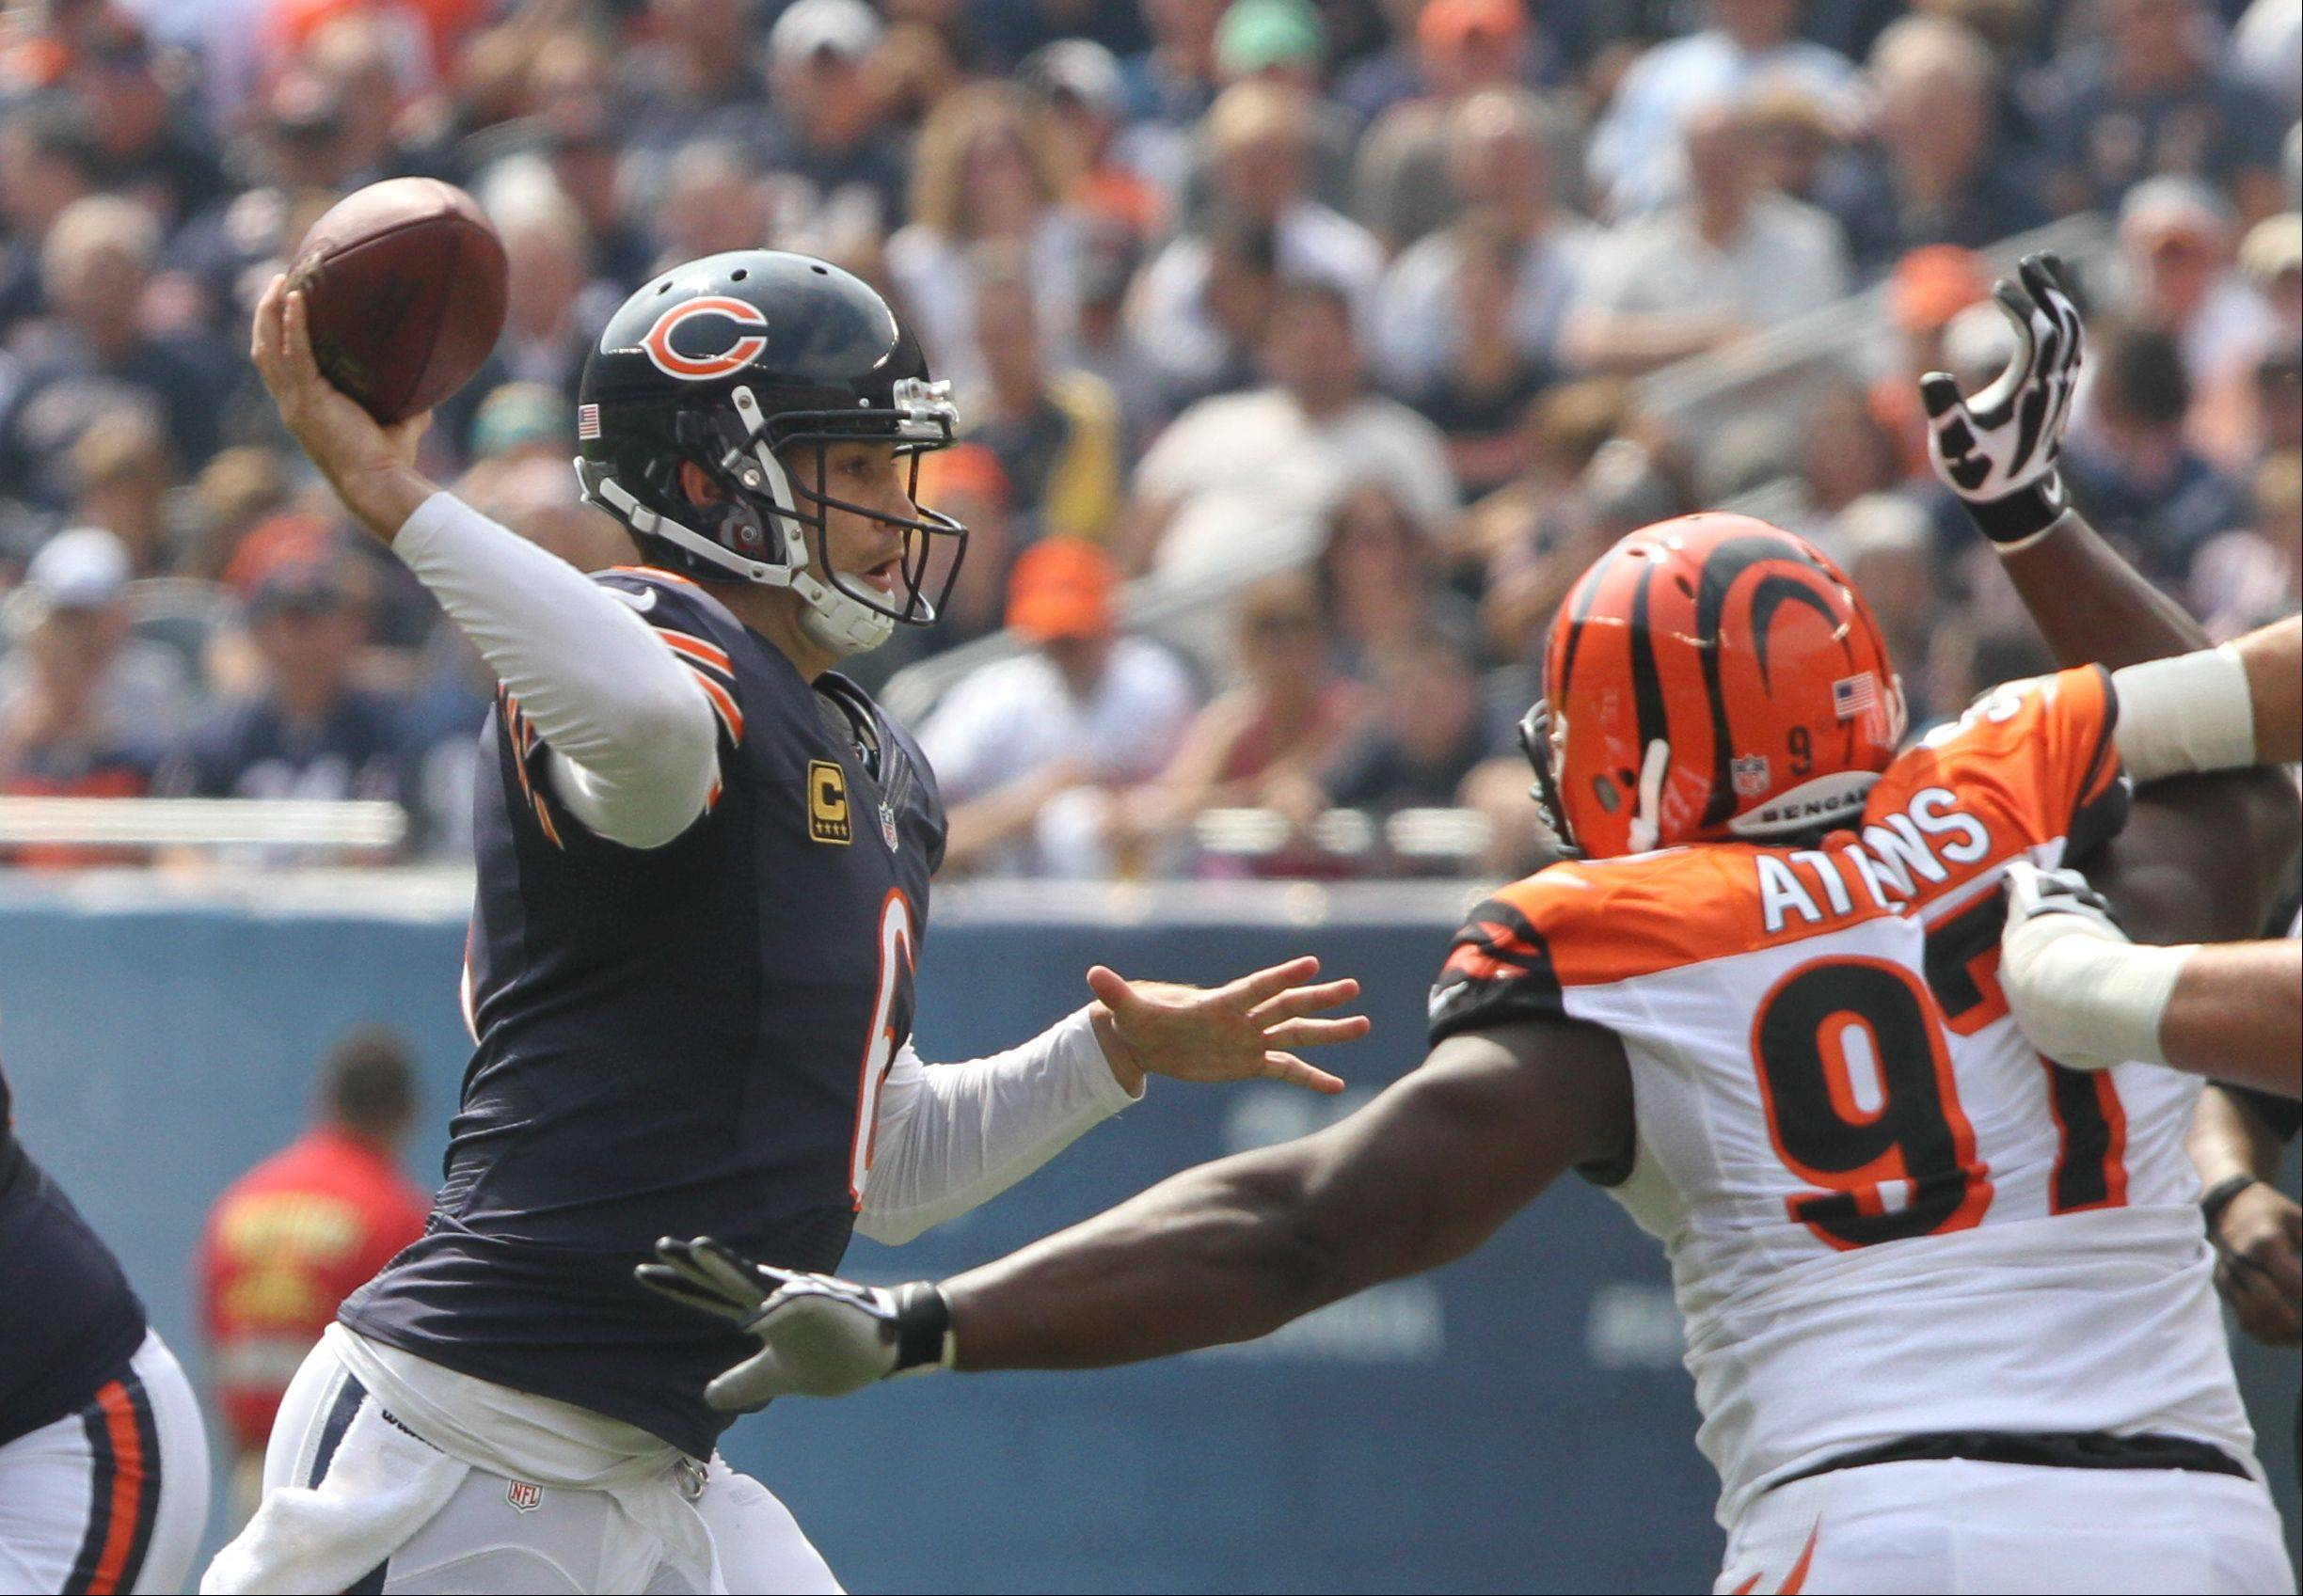 Bears quarterback Jay Cutler made it through the opener without being sacked, but the offensive line has another challenge Sunday in Vikings defensive end Jared Allen, a longtime foe of Cutler.